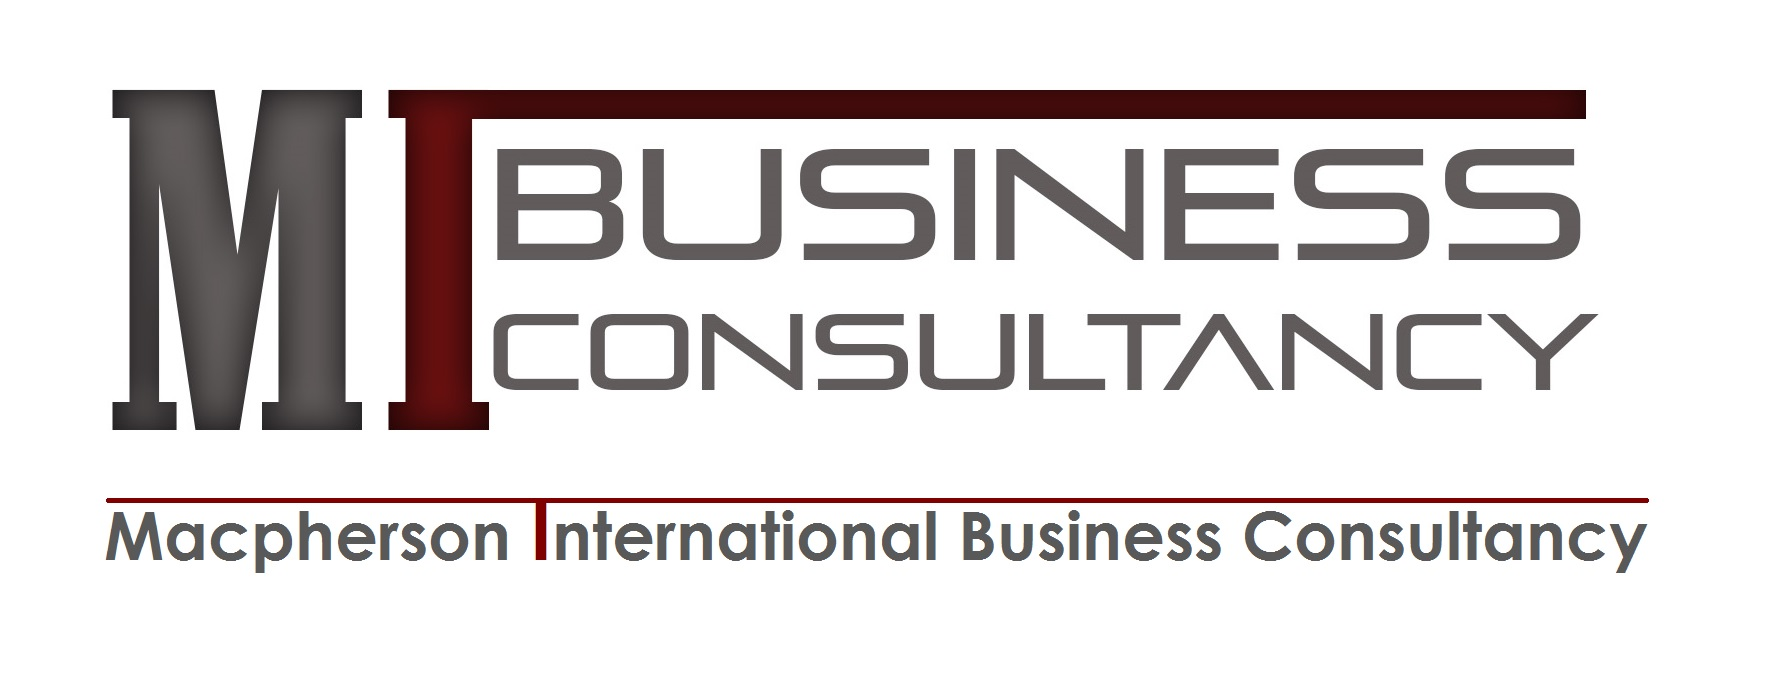 Macpherson International Business Consultancy